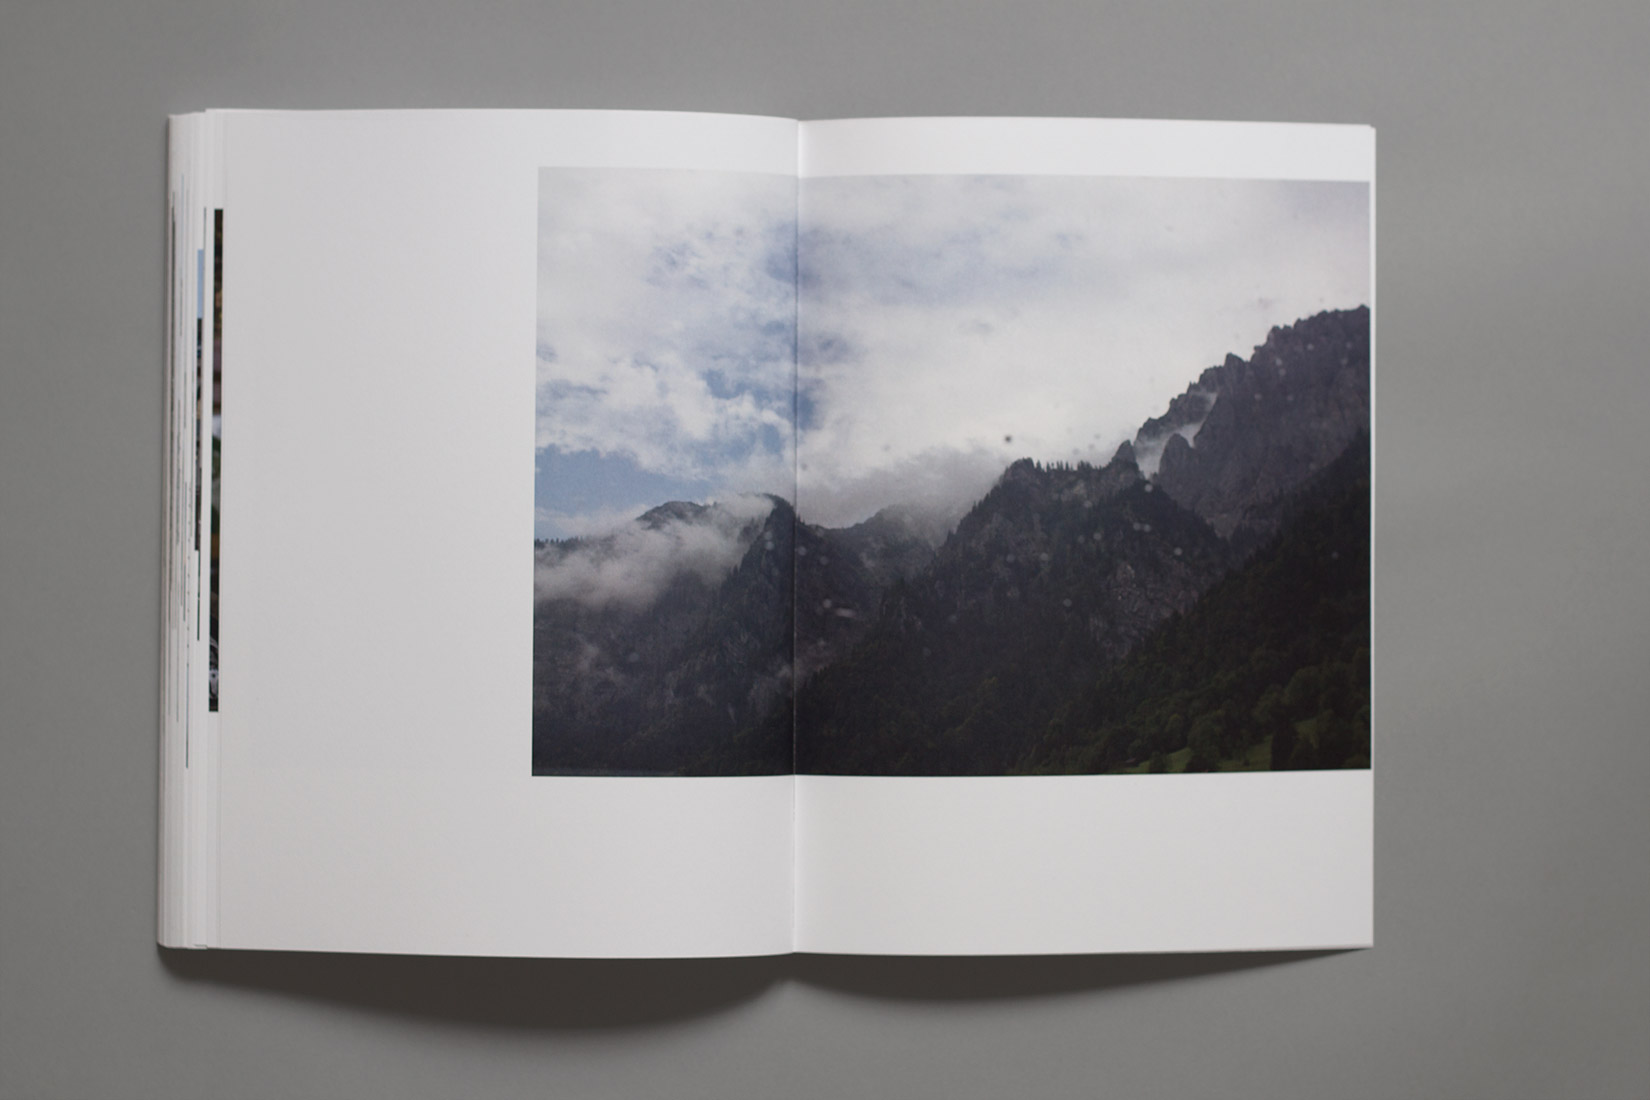 Study trip, book, Autriche, mountains in the fog